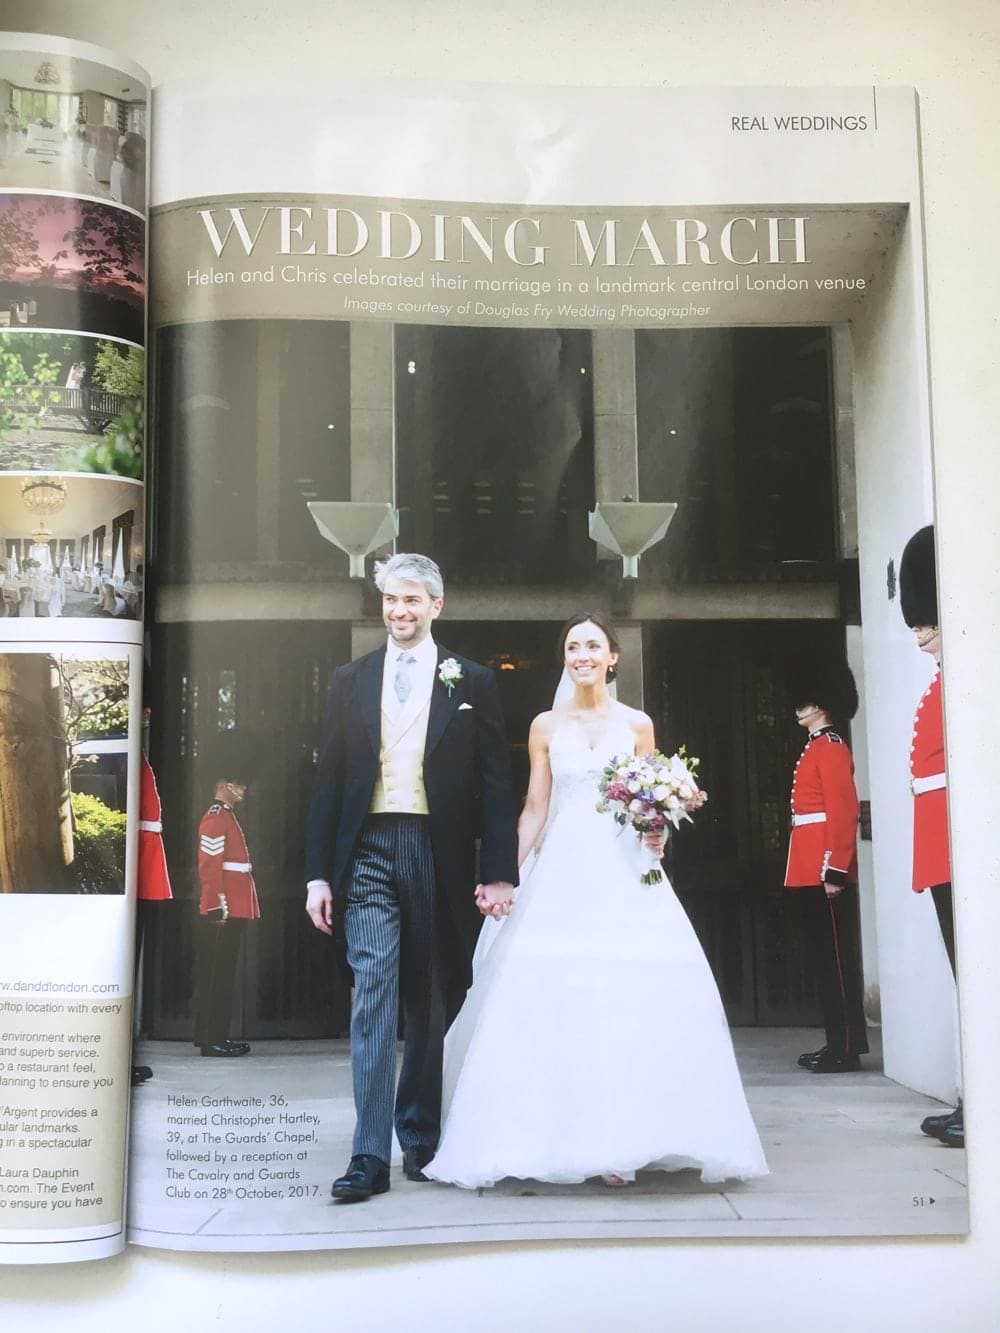 First page of article showing bride and groom standing in front of The Guards Chapel in London